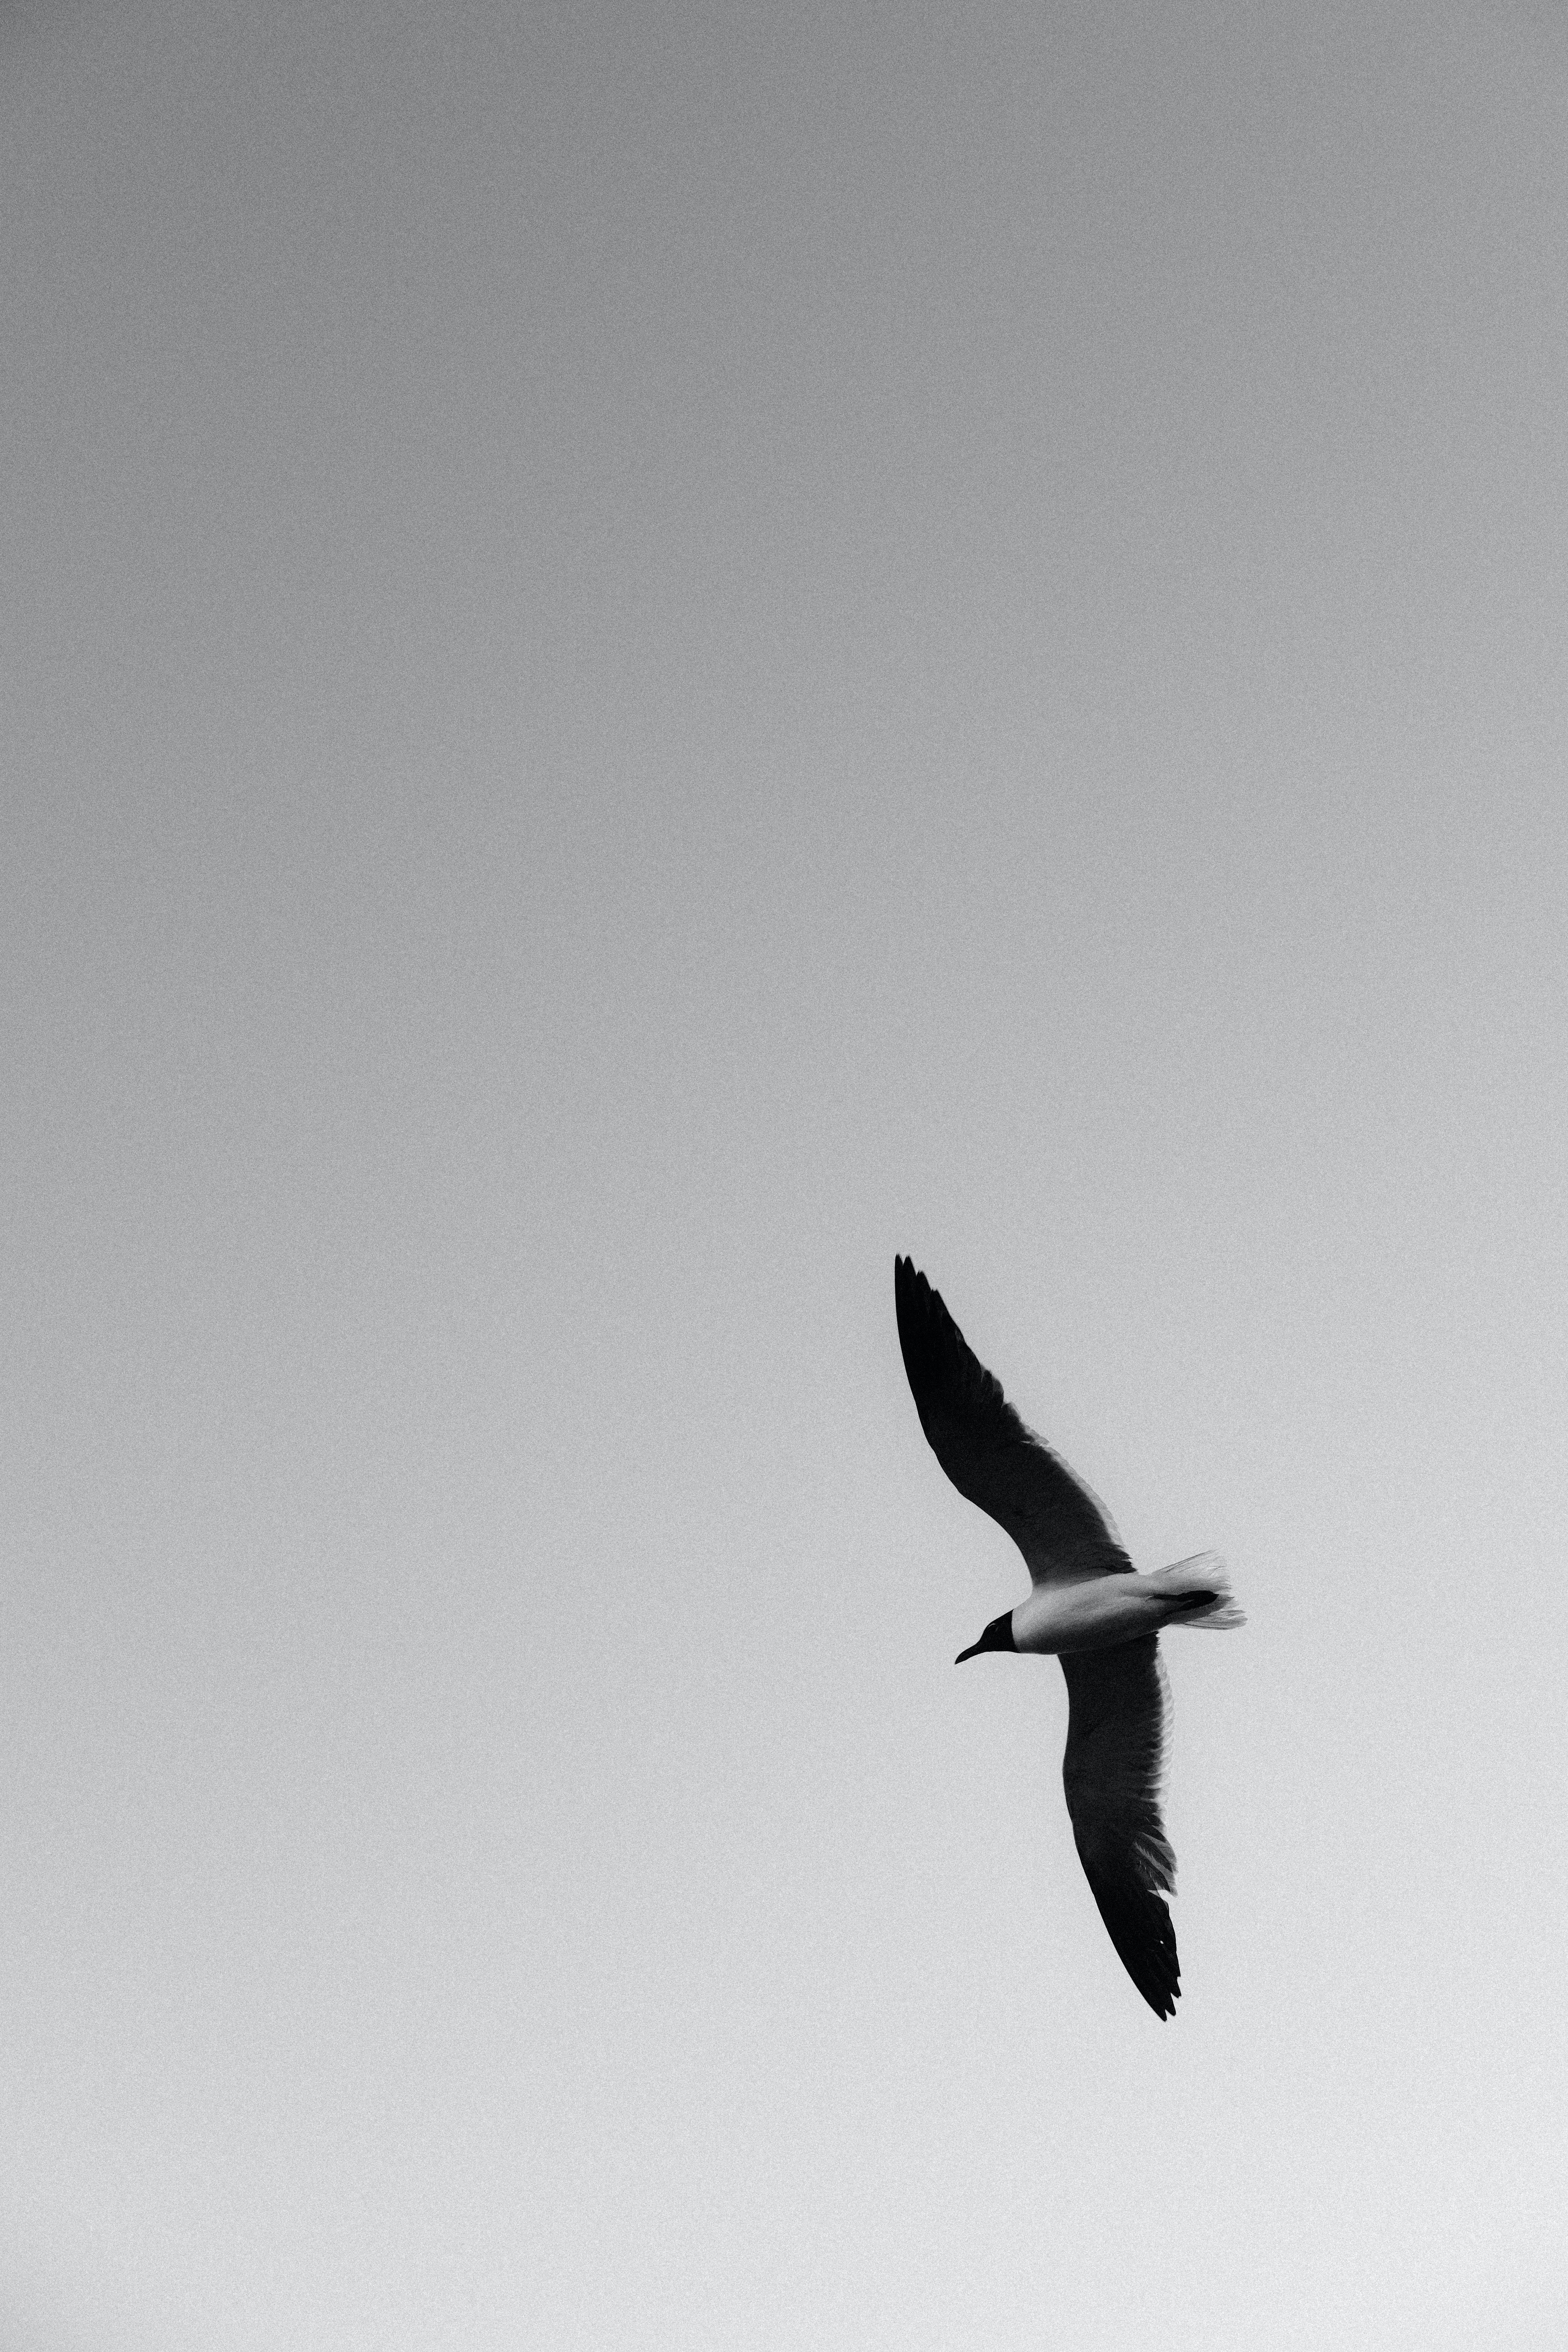 105383 download wallpaper Animals, Gull, Seagull, Bird, Bw, Chb, Wings, Flight screensavers and pictures for free